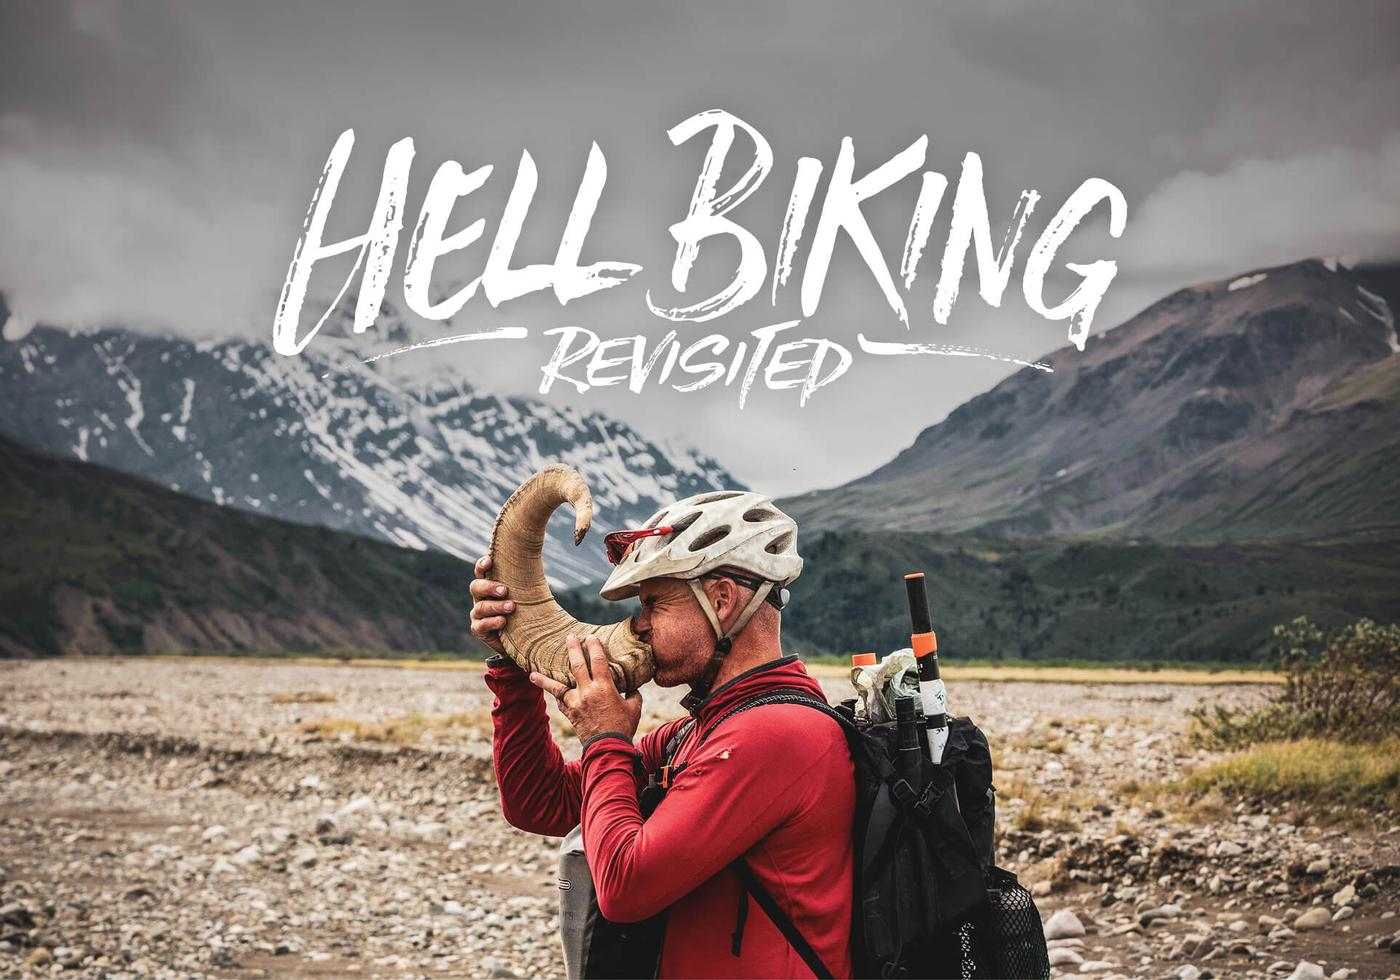 Salsa Revisits Hell Biking